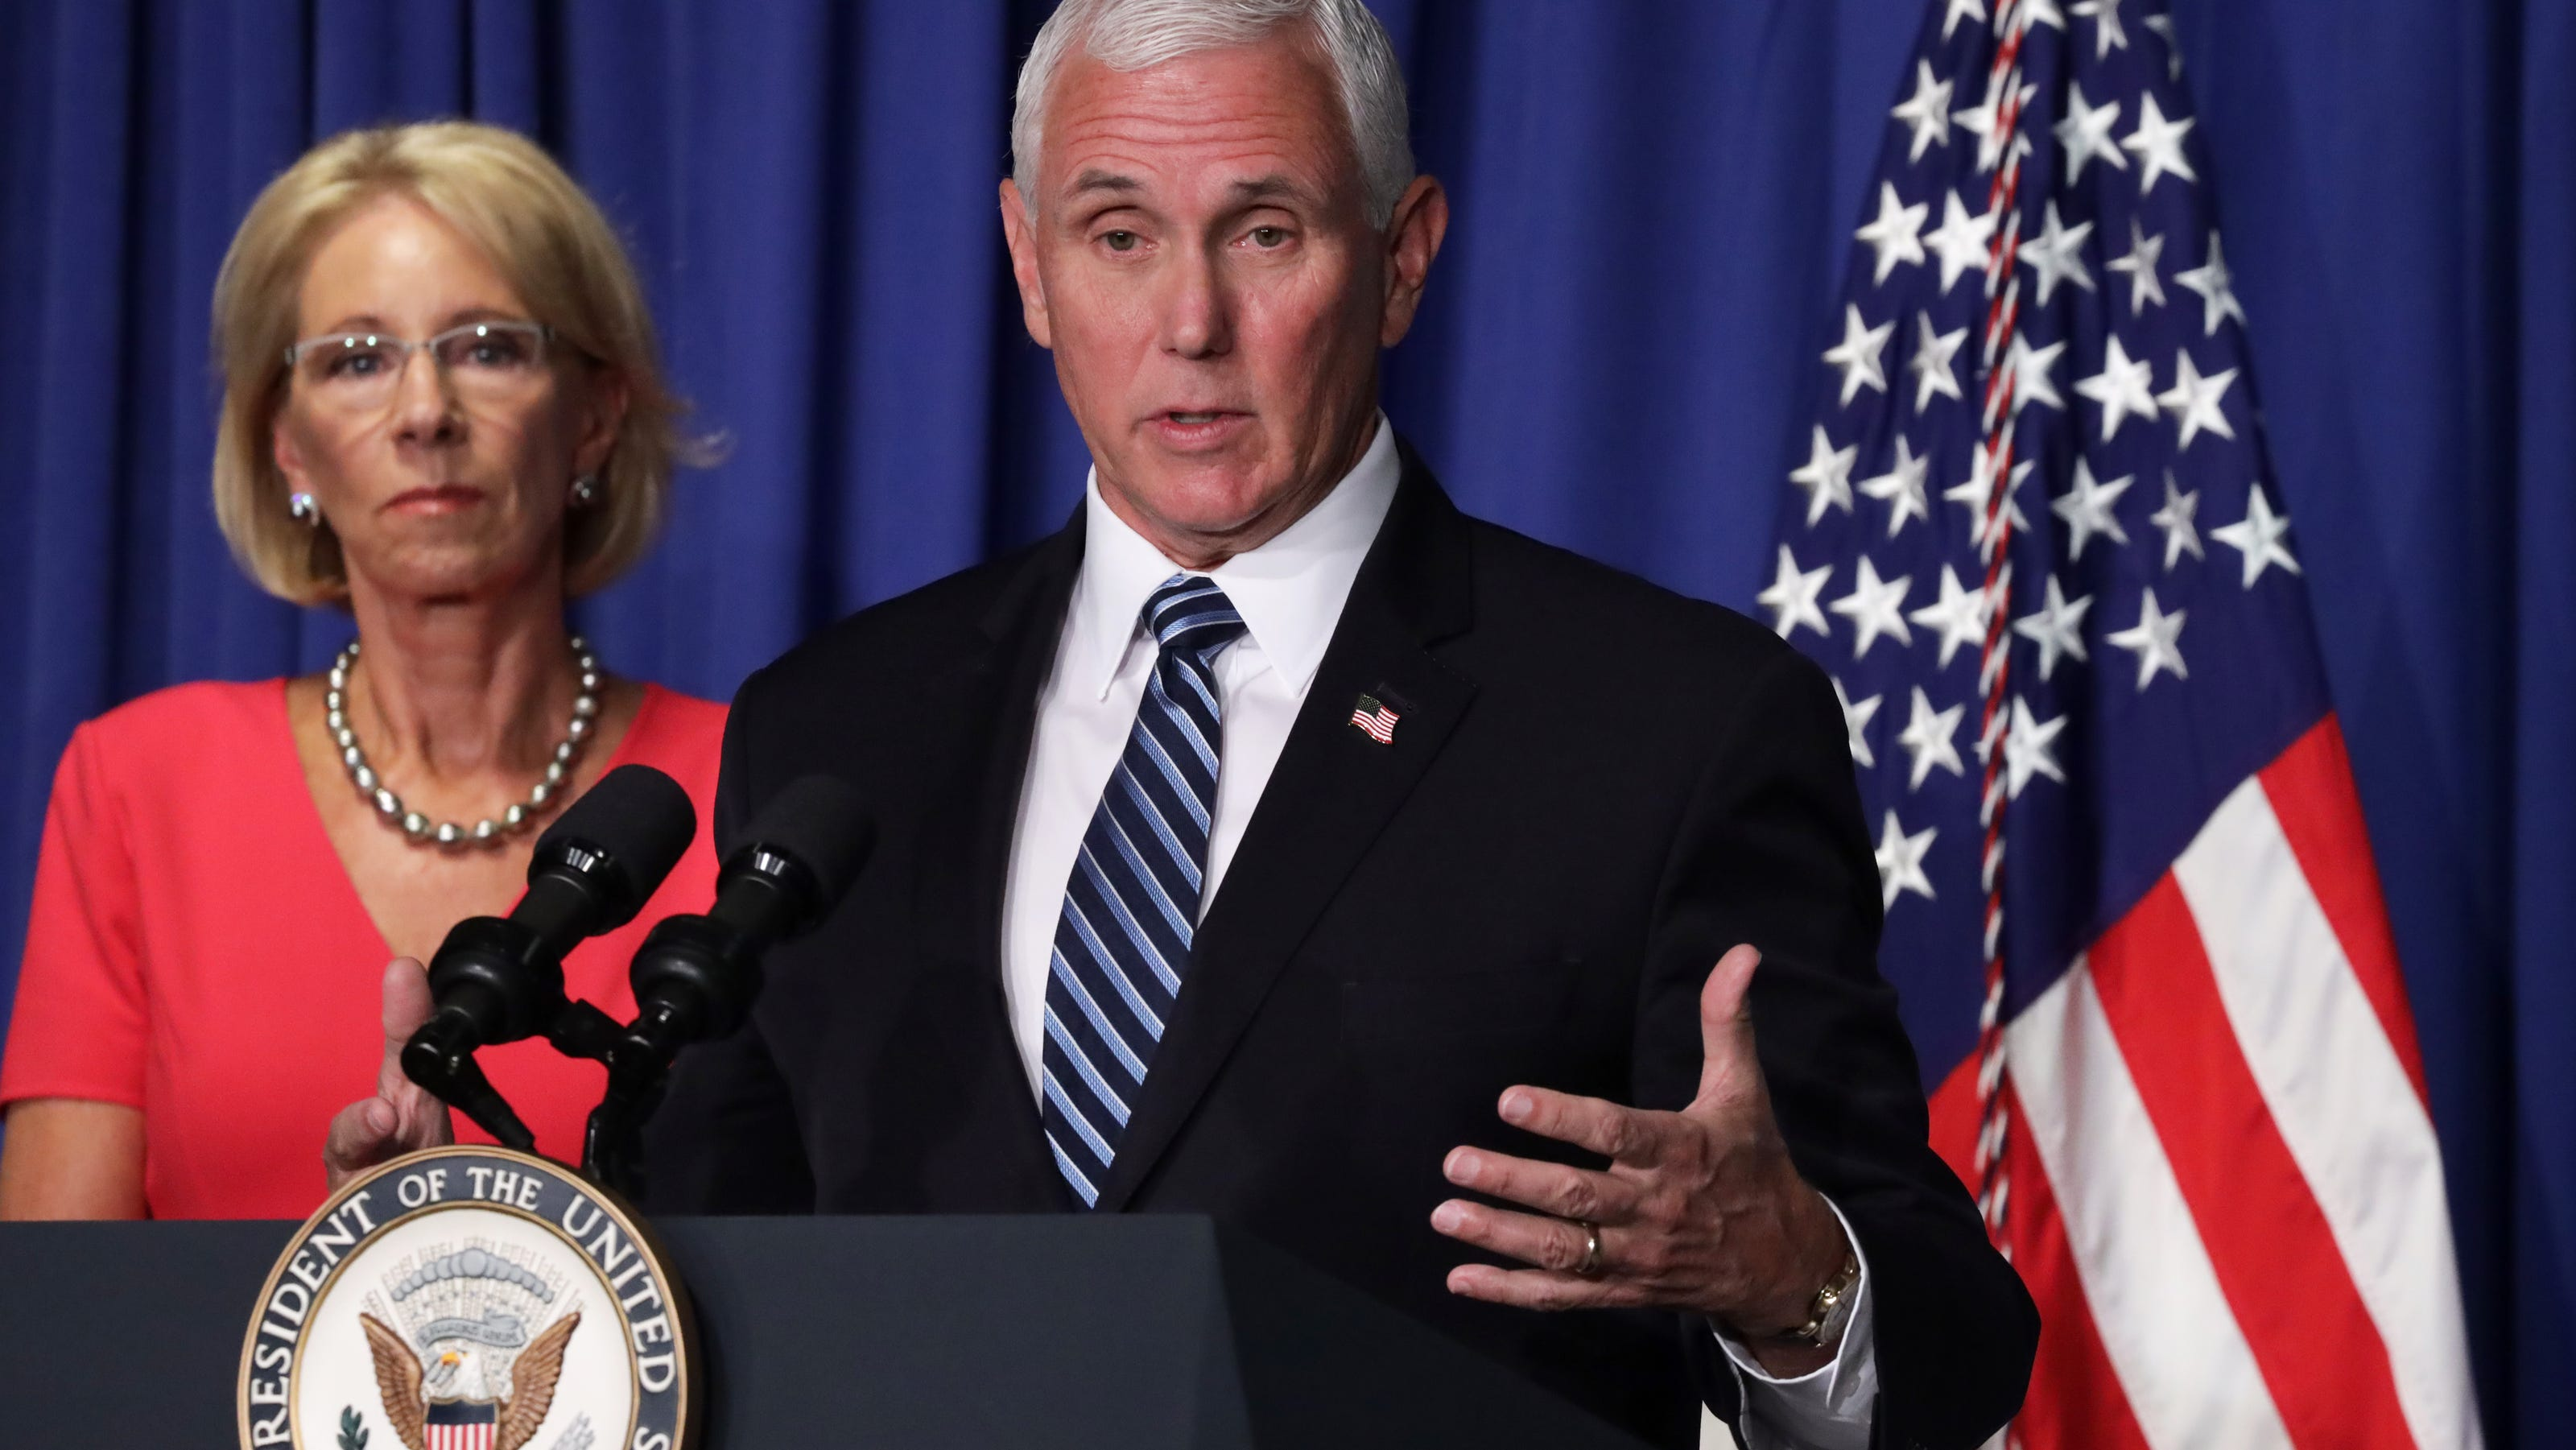 Pence says CDC changing school reopening guidelines after Trump called them 'tough and expensive' - USA TODAY